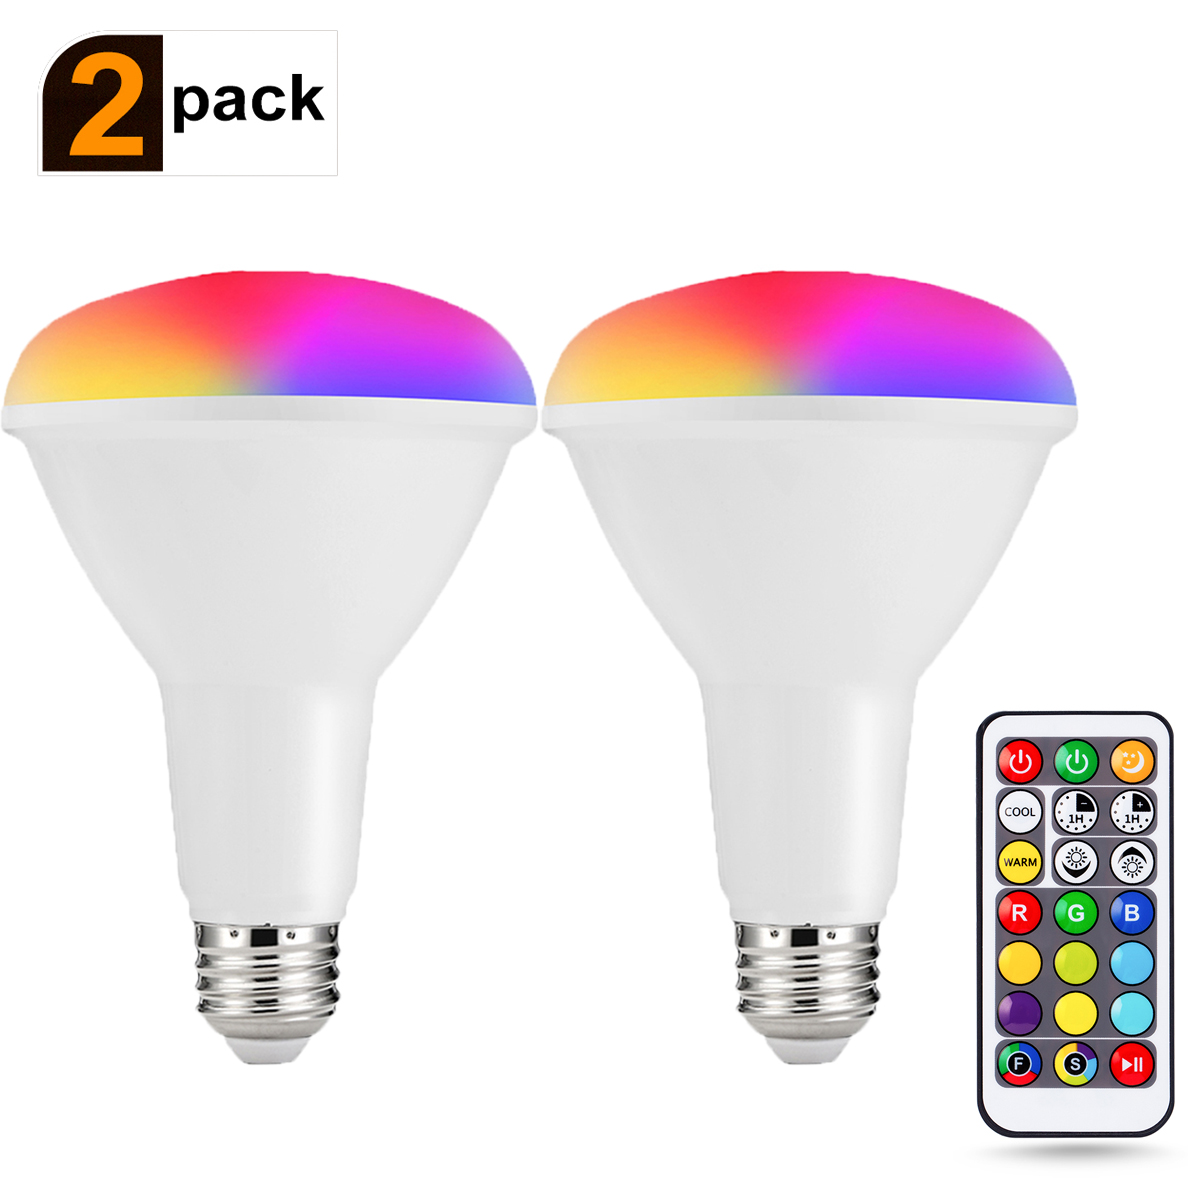 br30 rgb led flood lights 100w equivalent warm cool white light bulb 12w dimmable recessed lighting remote control color changing lights 2 pack